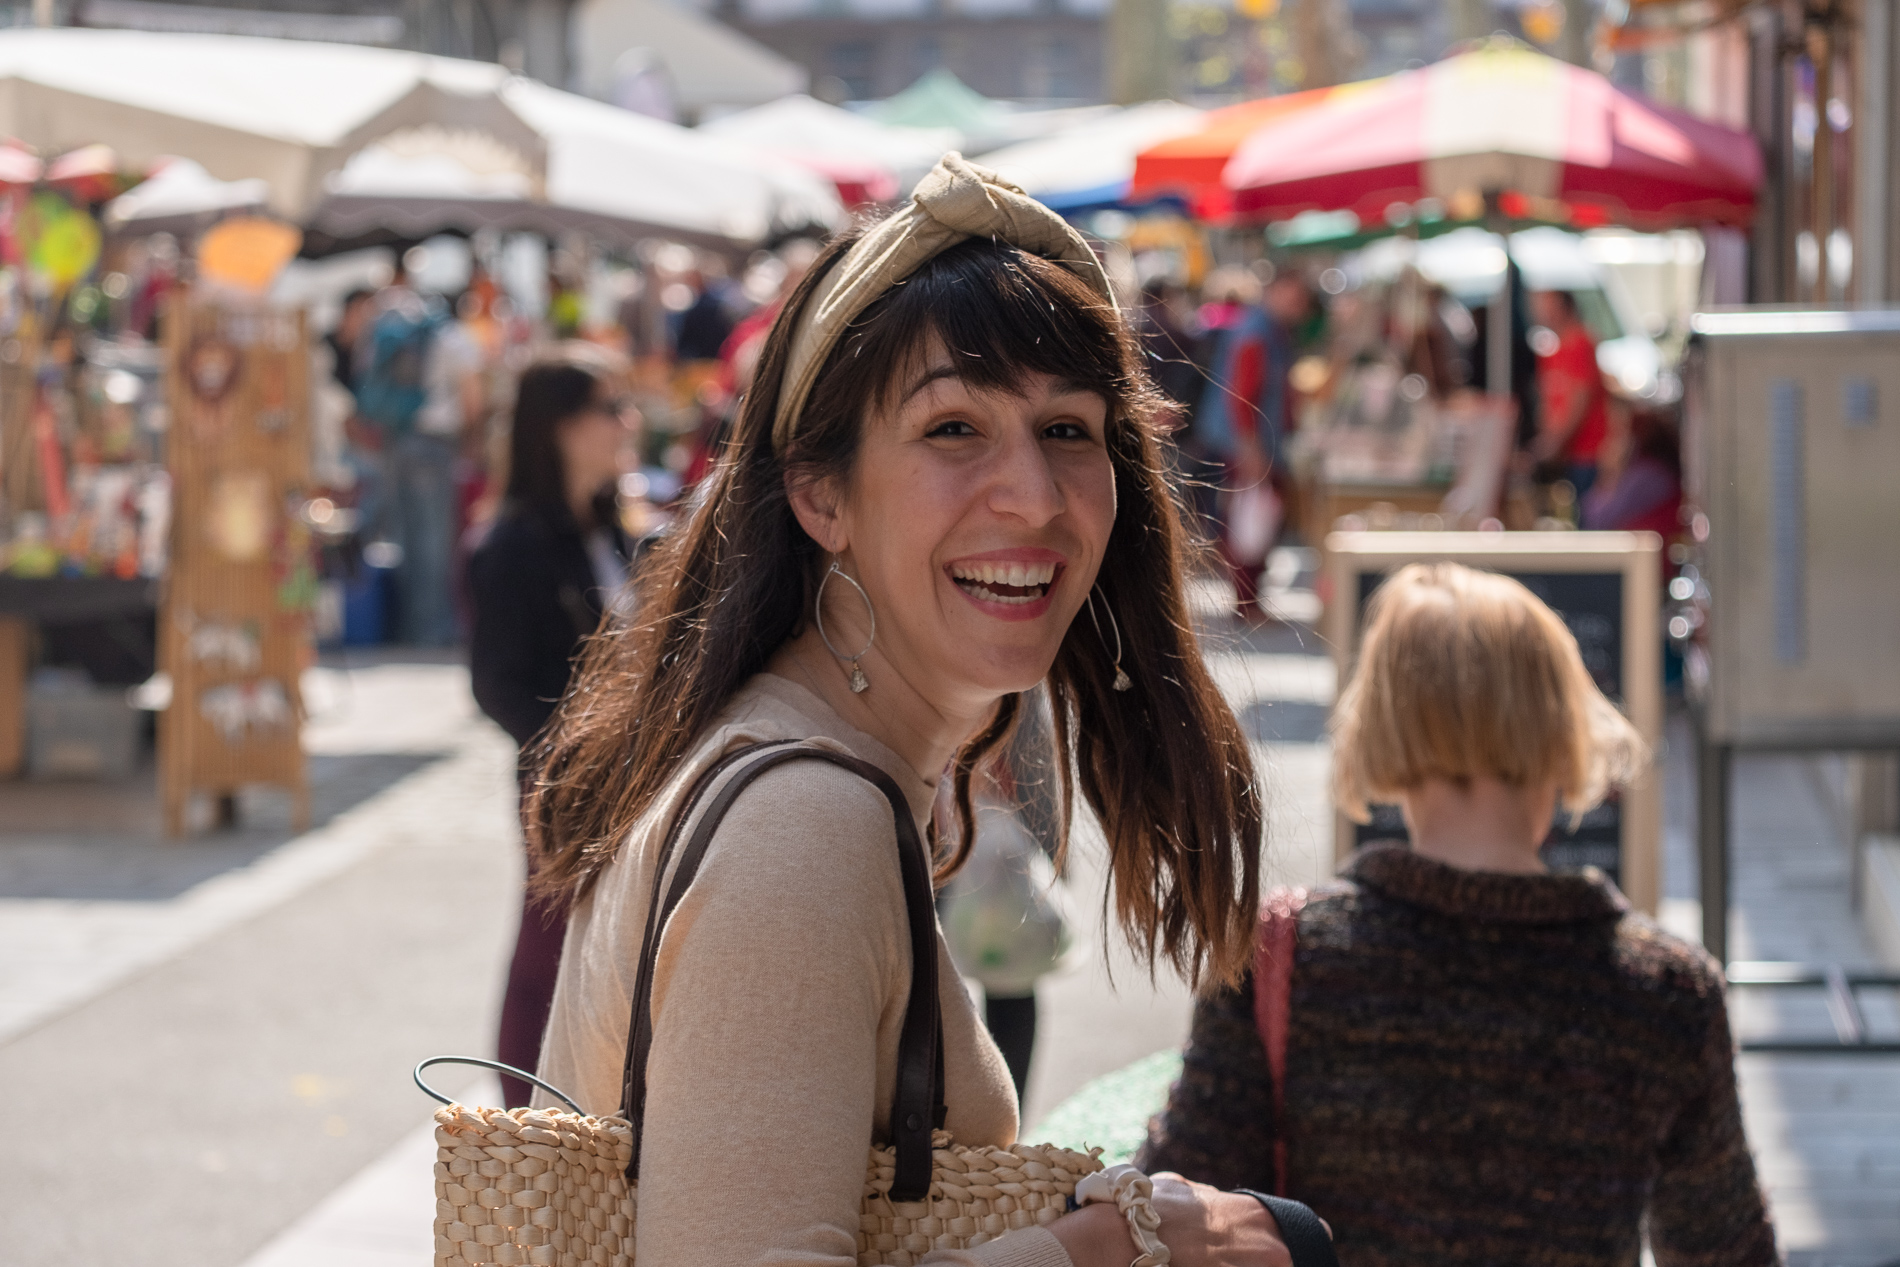 A woman wears a luxurious handmade beige khadi wire headband and looks overjoyed during a trip to Marche de St Girons France.